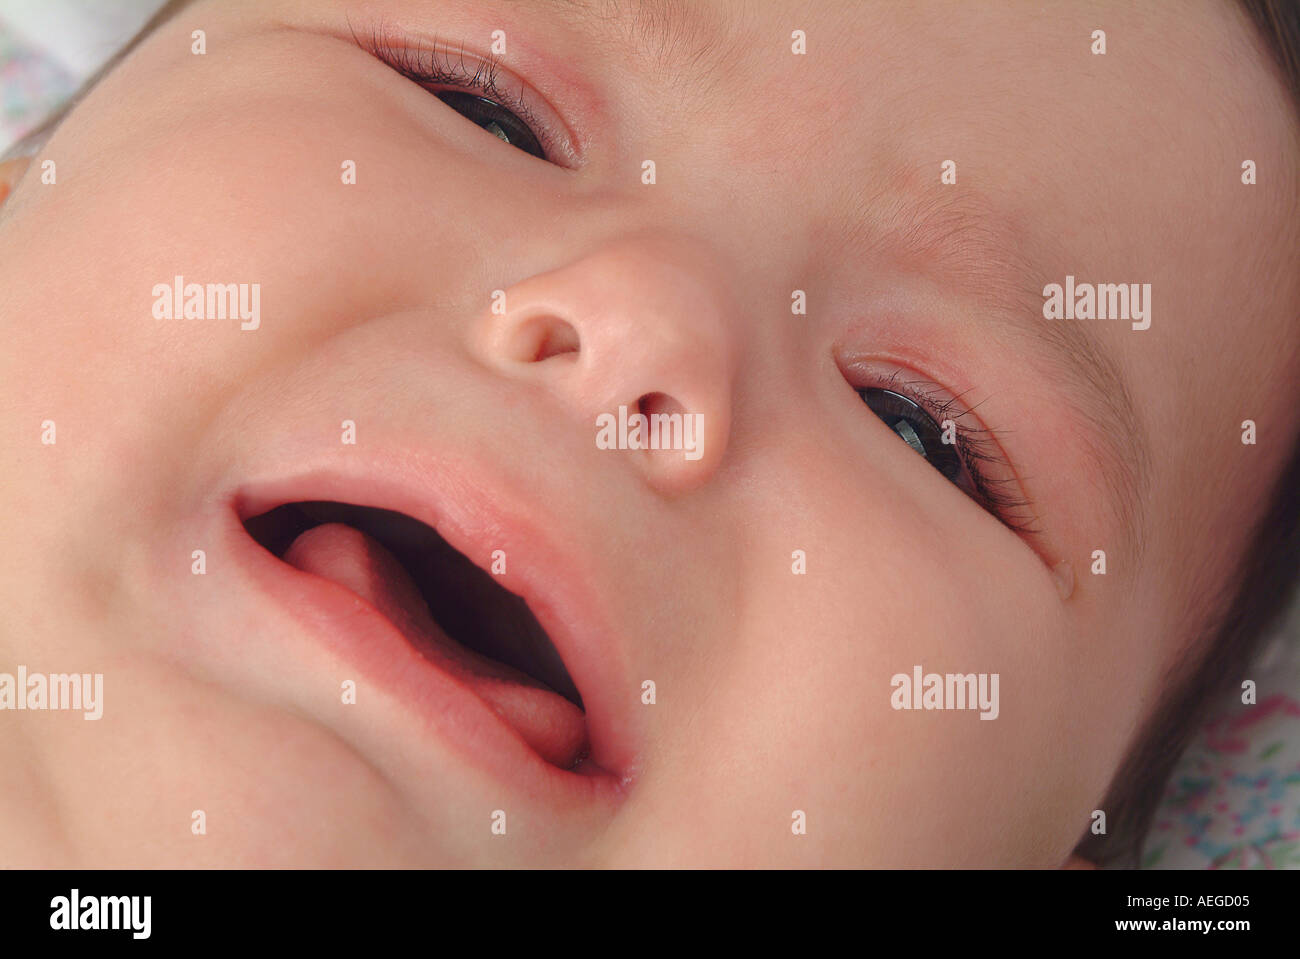 Baby baby crying sobbing lying white discomfort uneasy - Stock Image